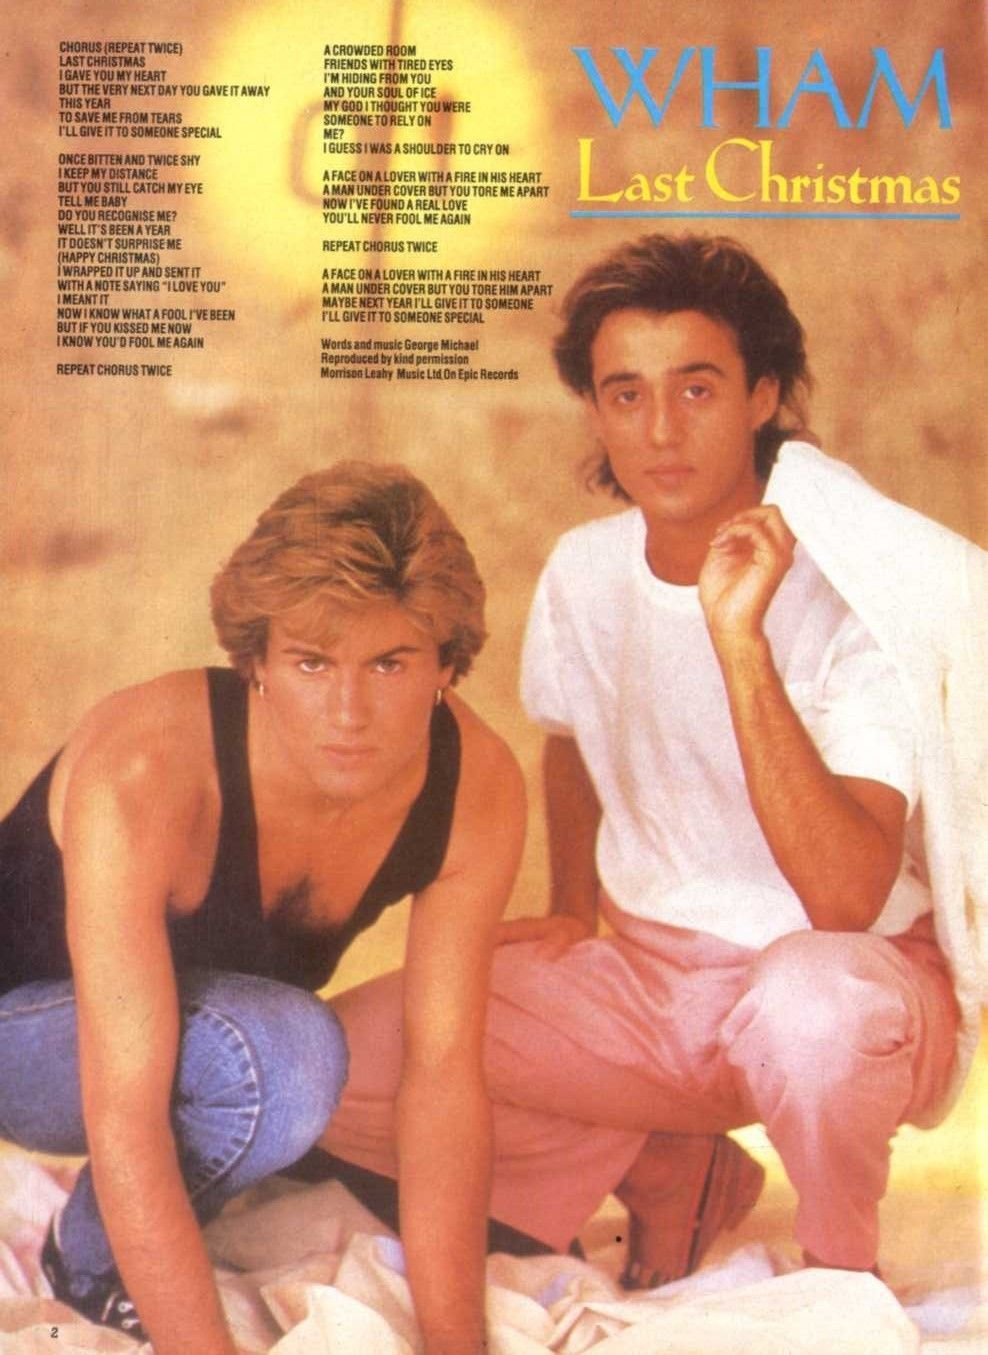 N1841/12P02 WHAM LAST CHRISTMAS SONGWORDS POSTER 11X8